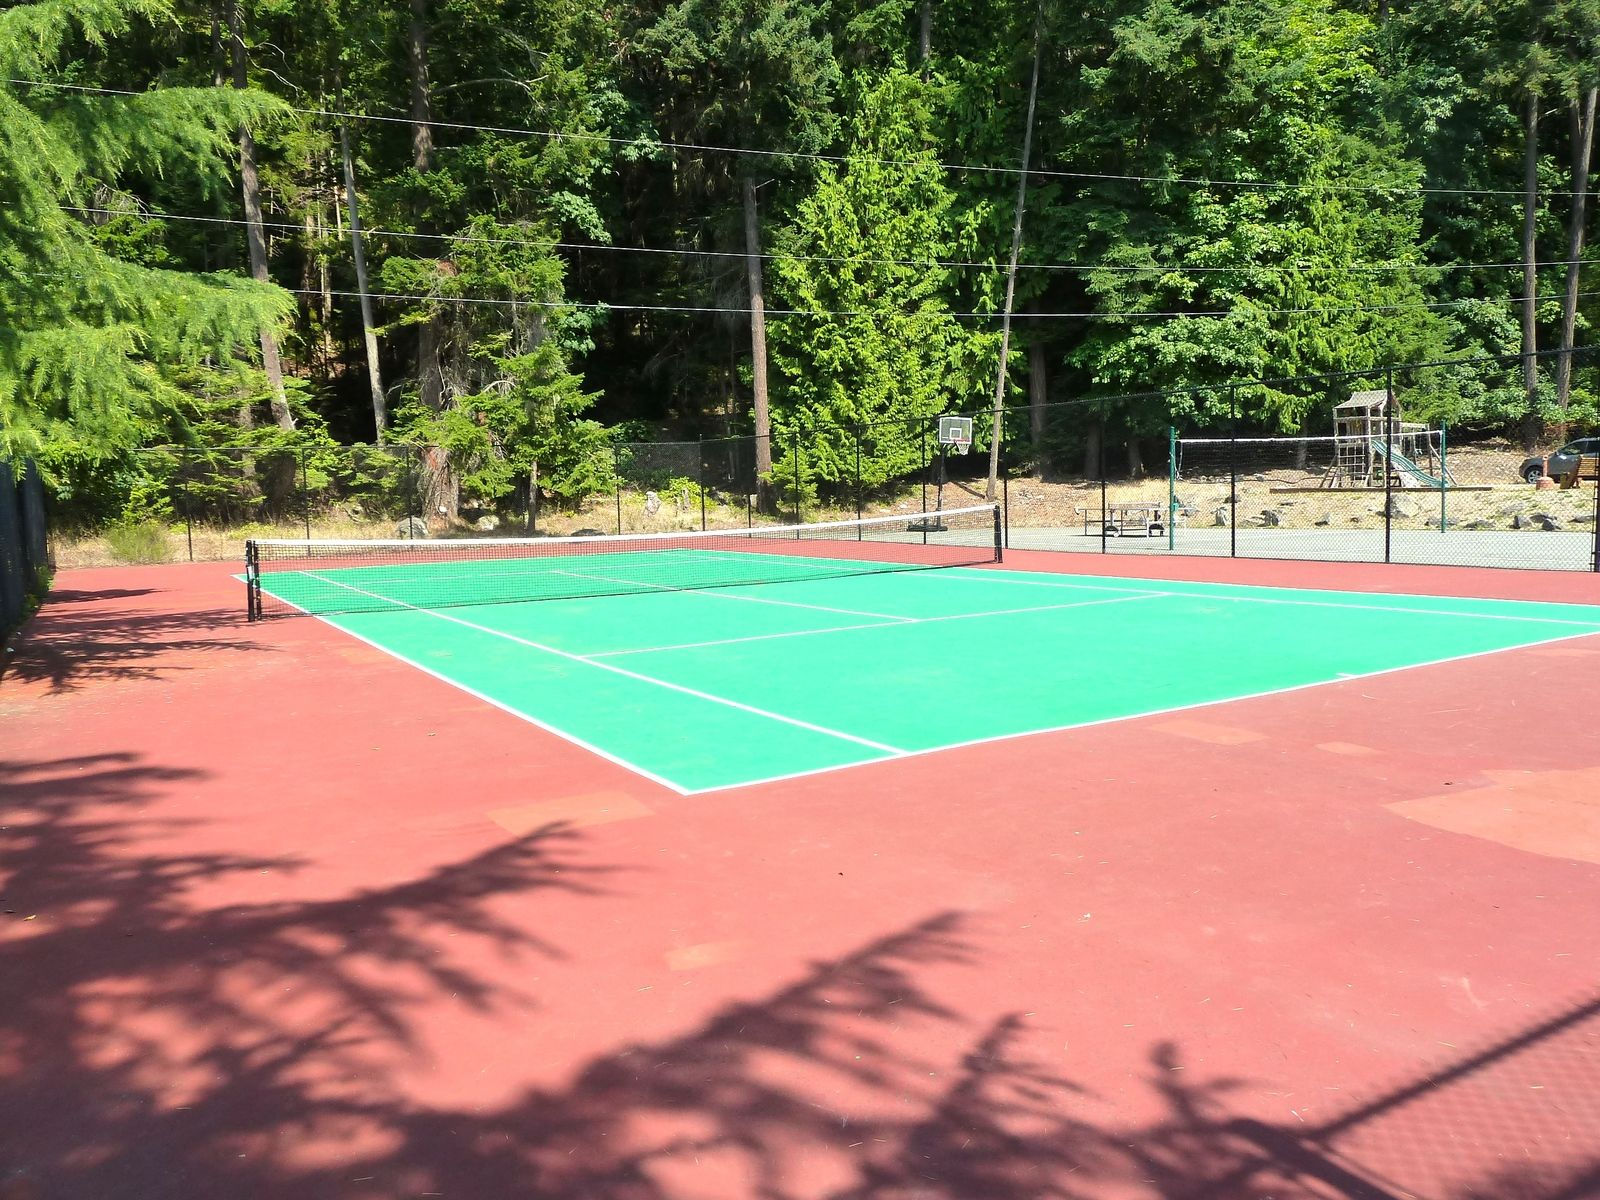 tennis-tourist-poets-cove-pender-island-tennis-court-teri-church